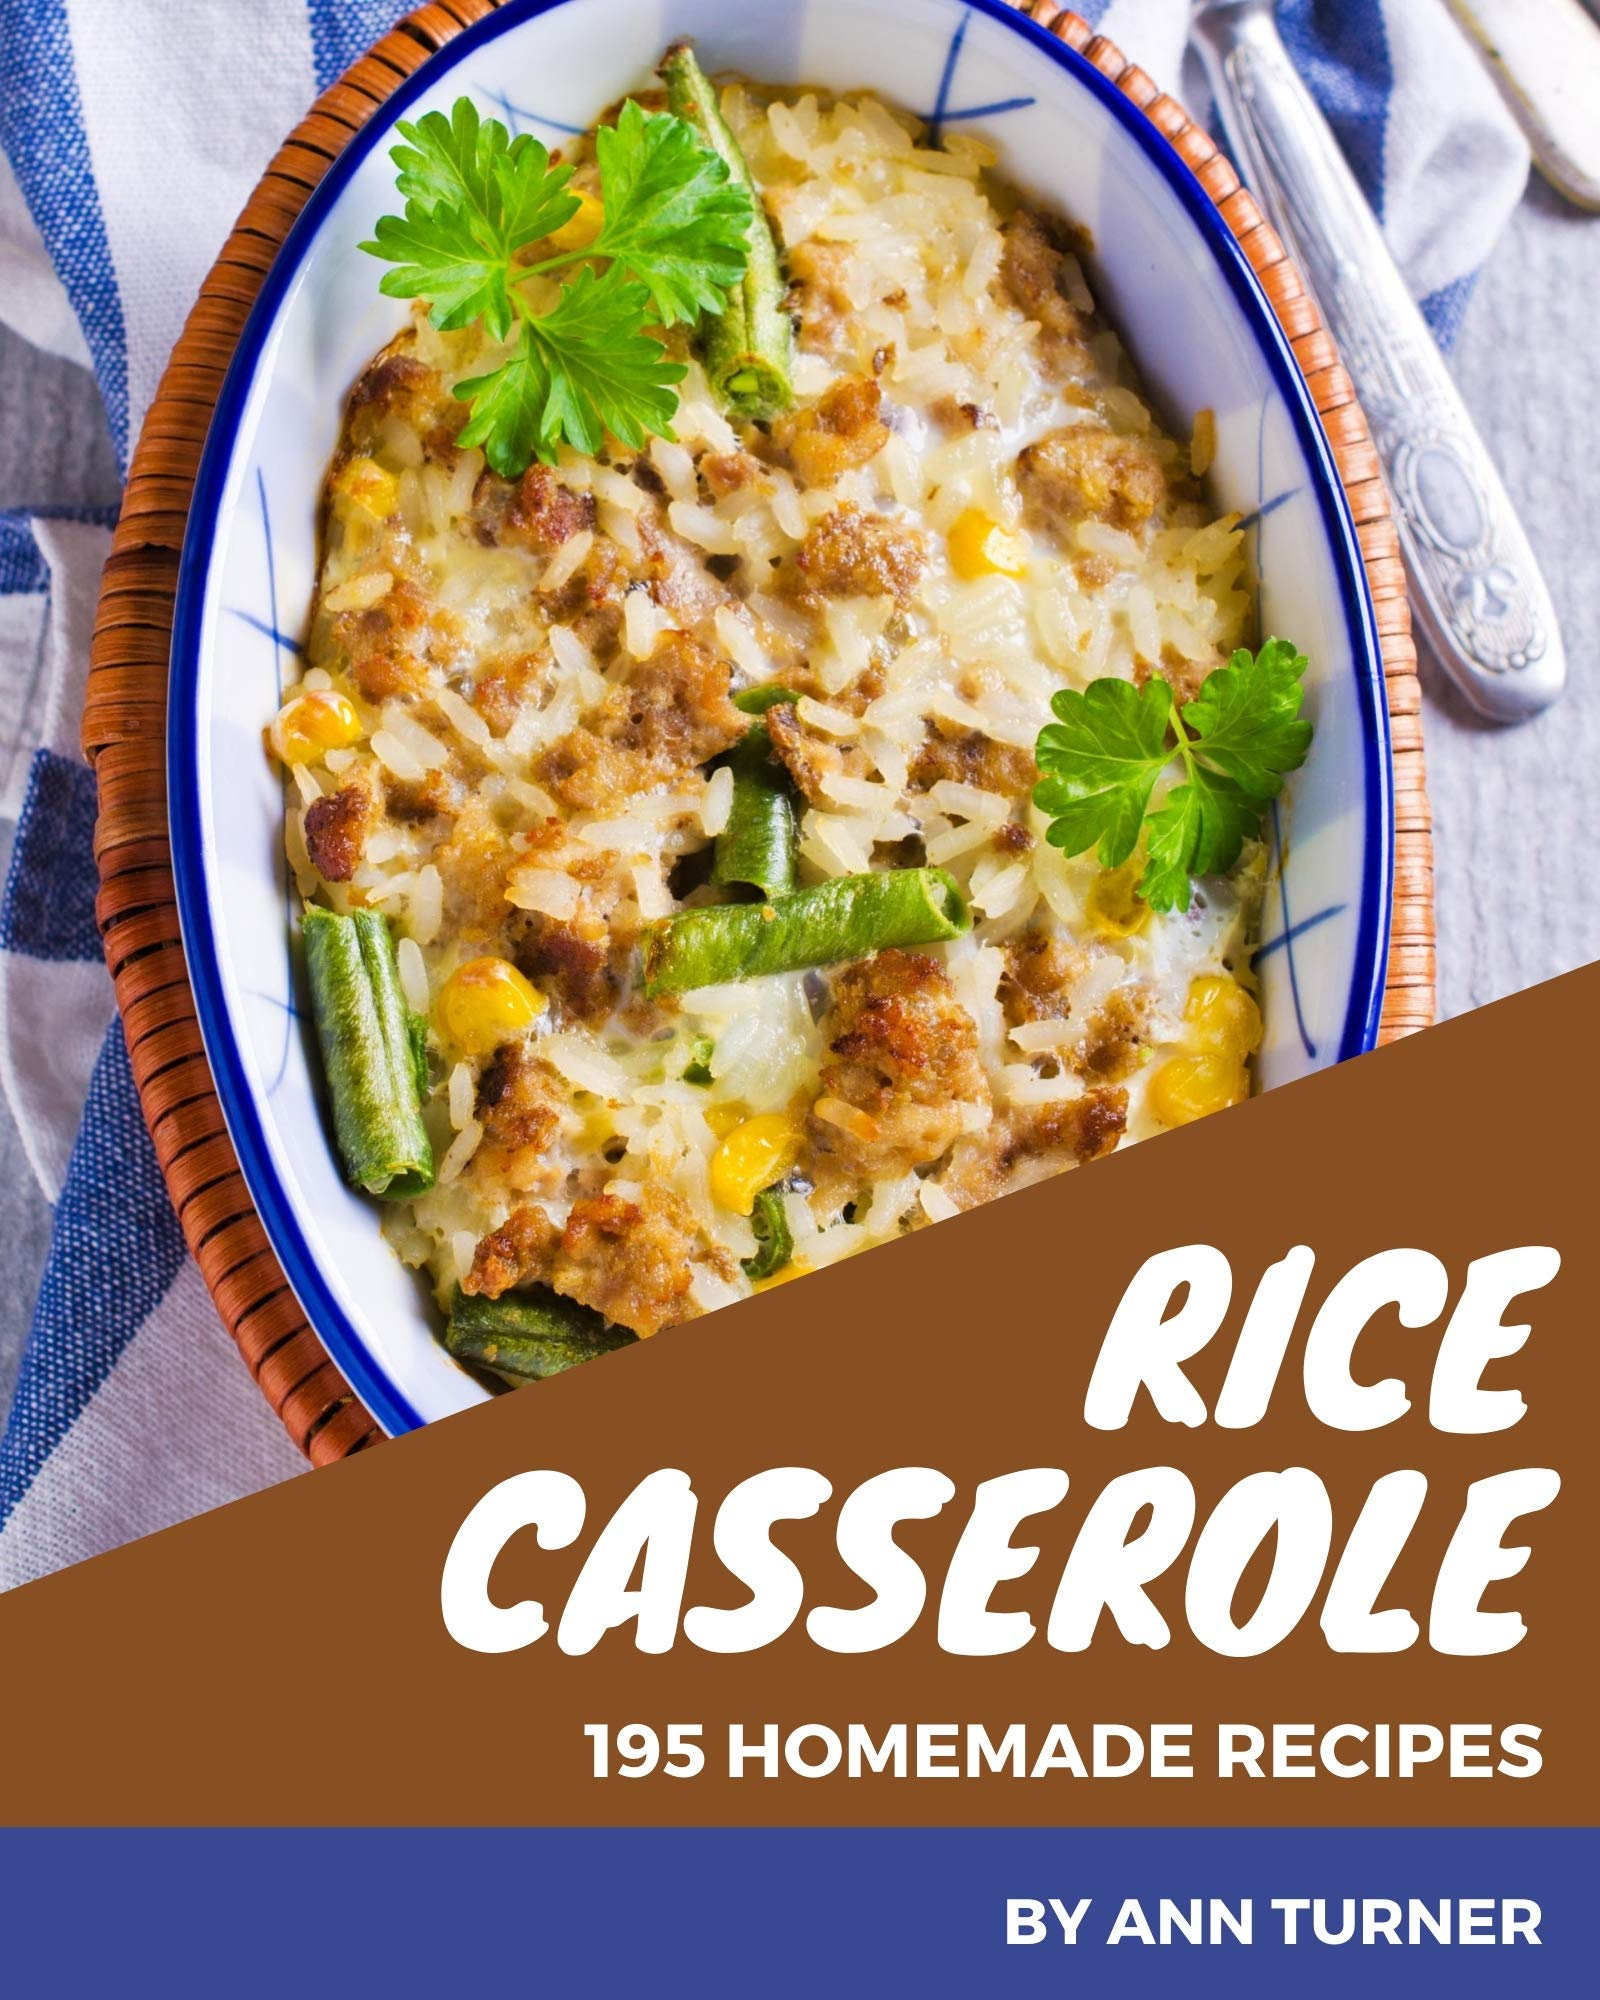 195 Homemade Rice Casserole Recipes: A Rice Casserole Cookbook You Won't be Able to Put Down